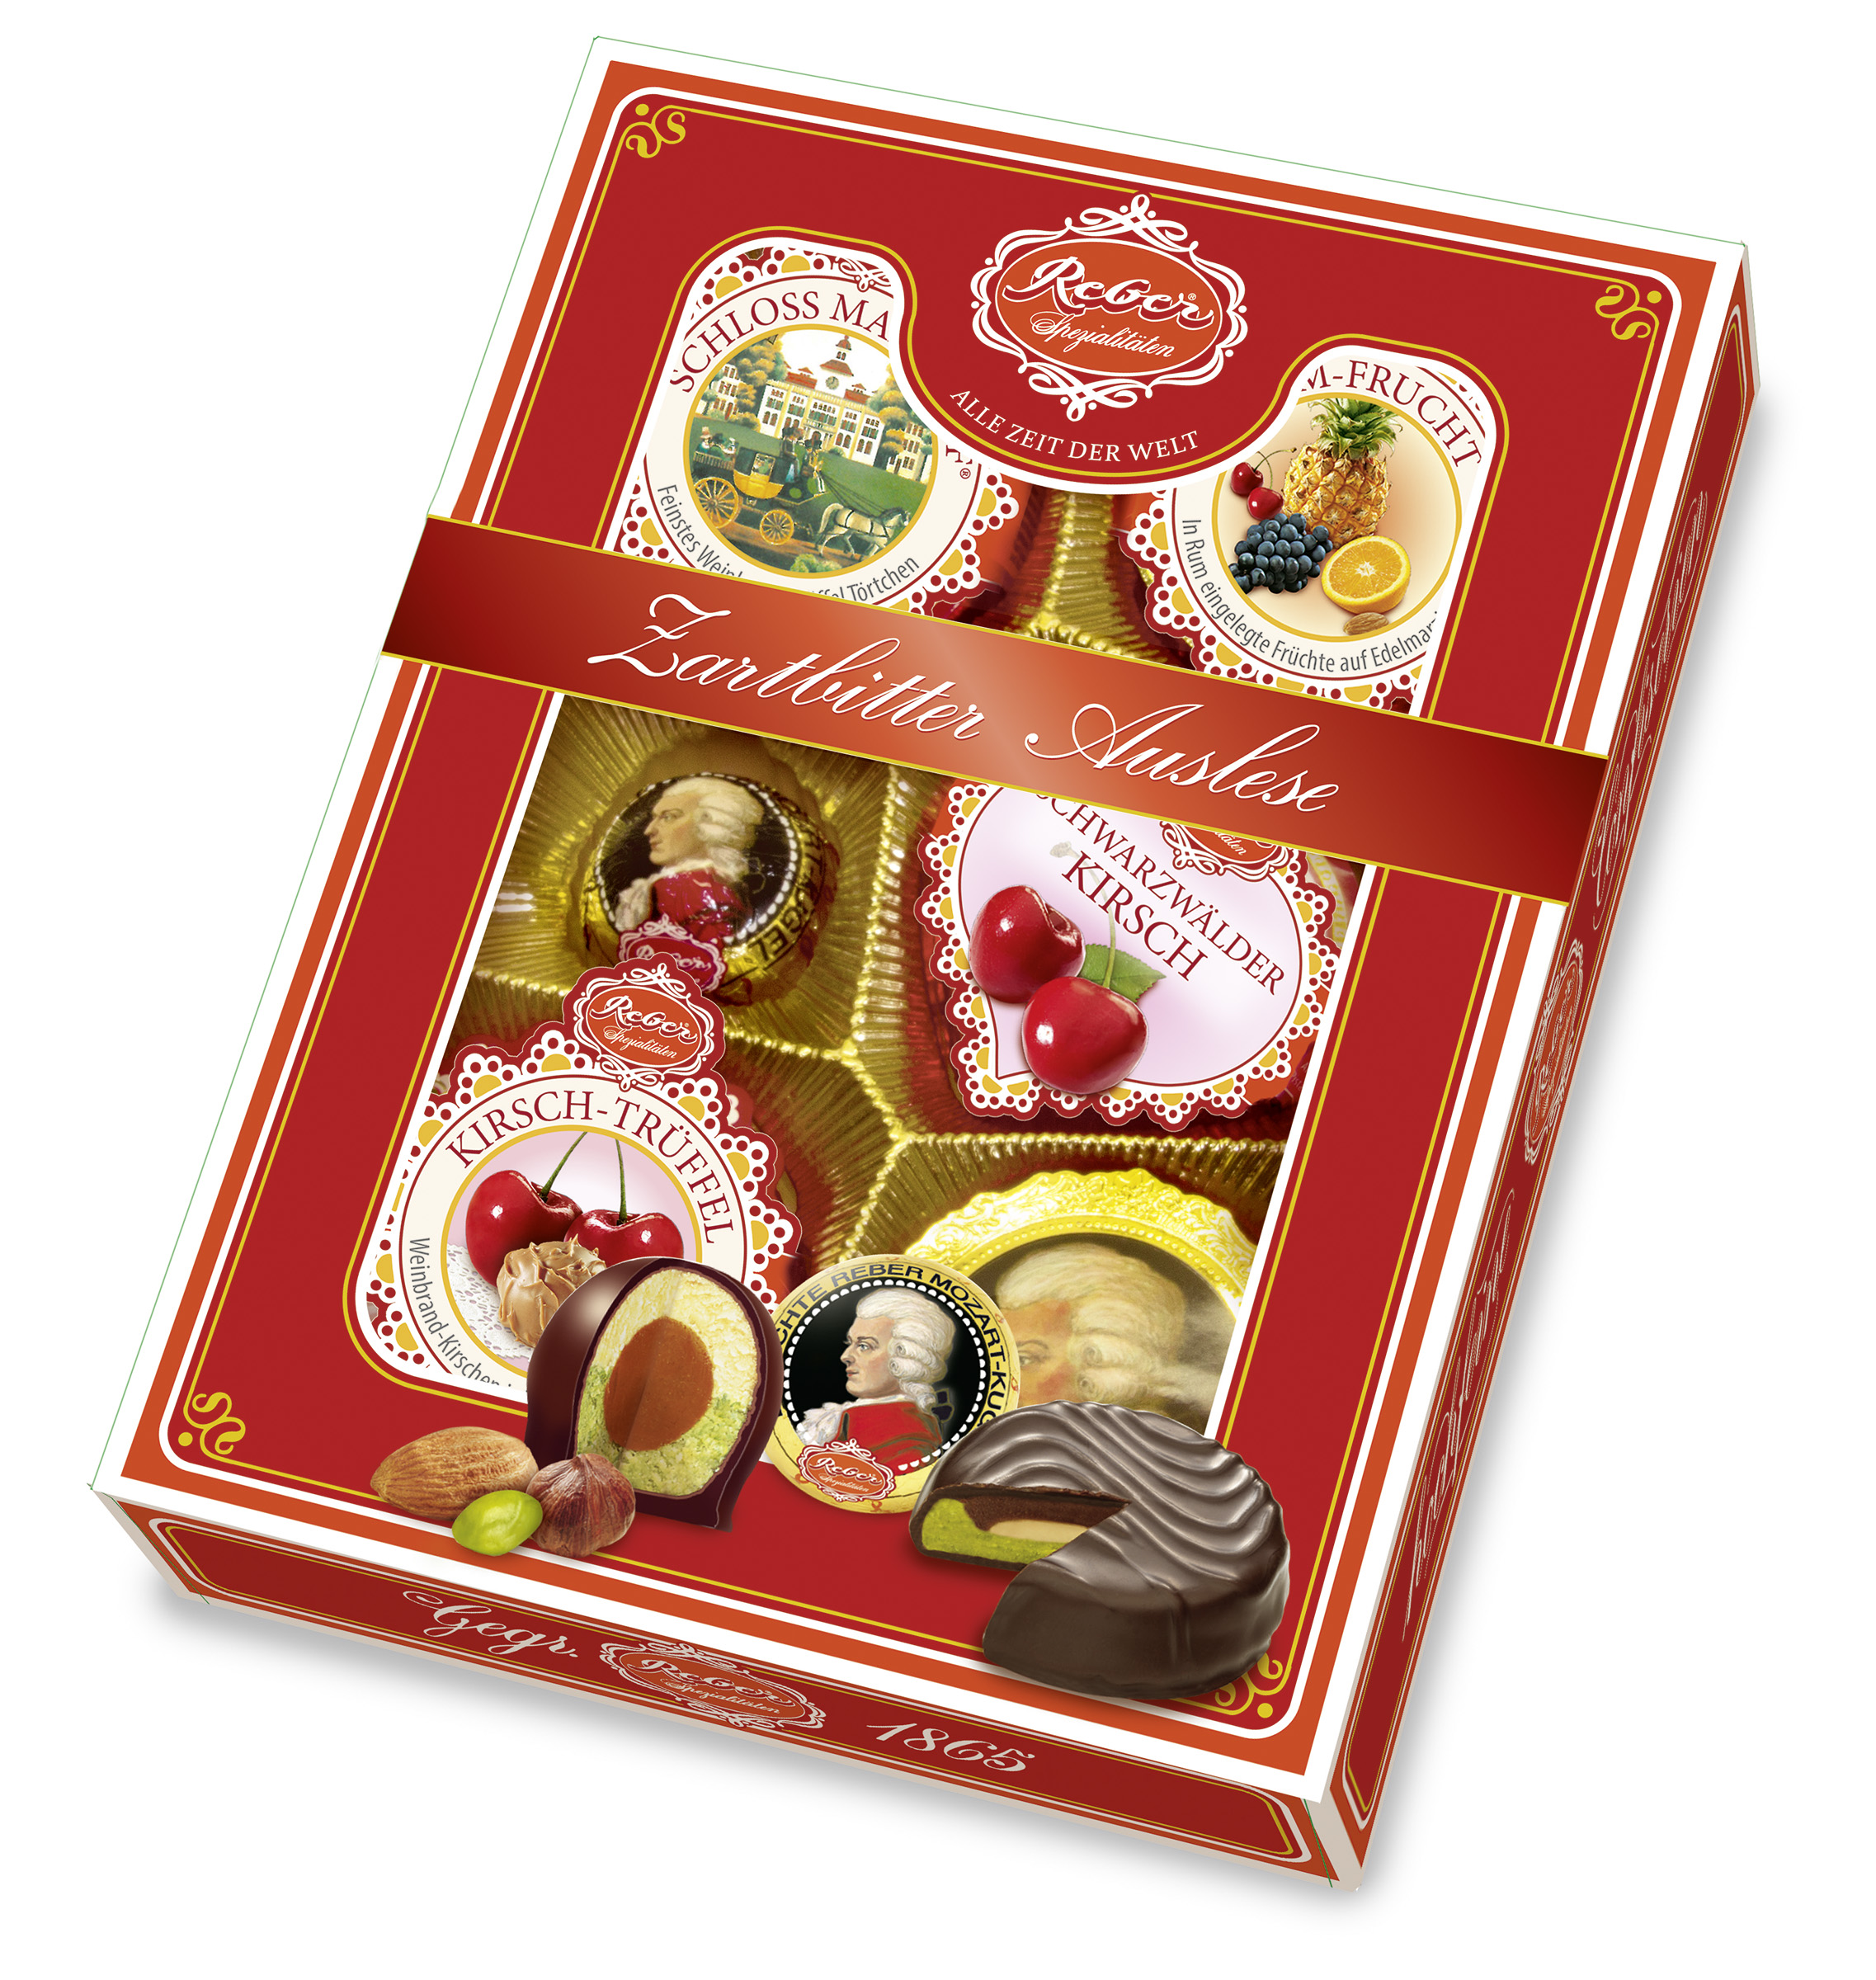 335- Reber Dark Chocolate Assortment 214g Image